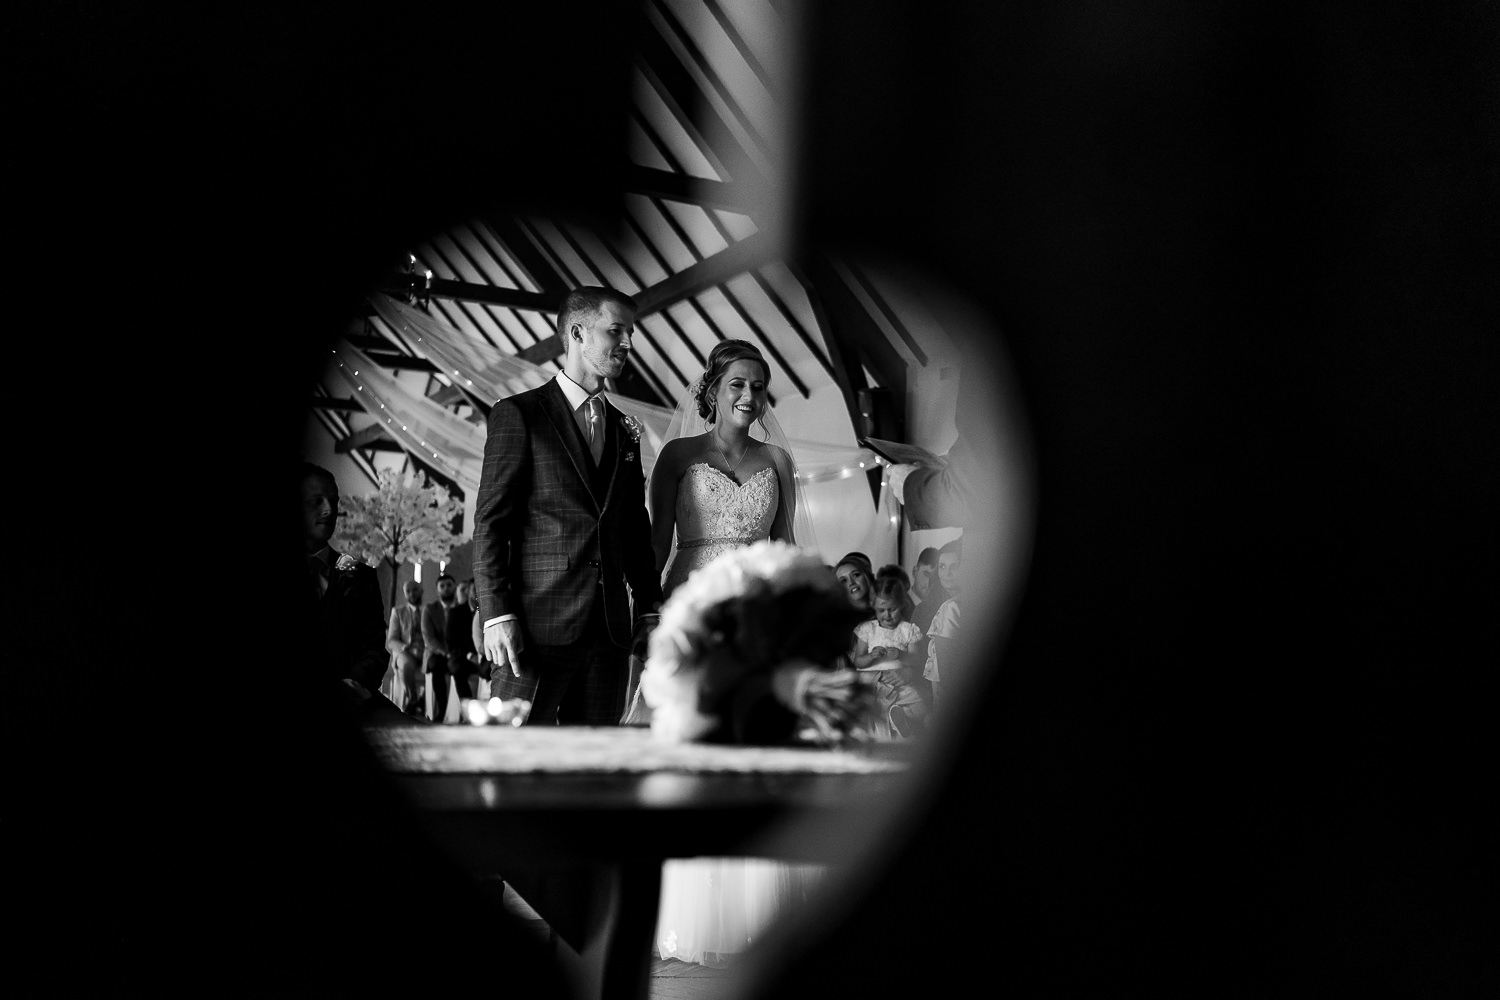 bride and groom through the chair